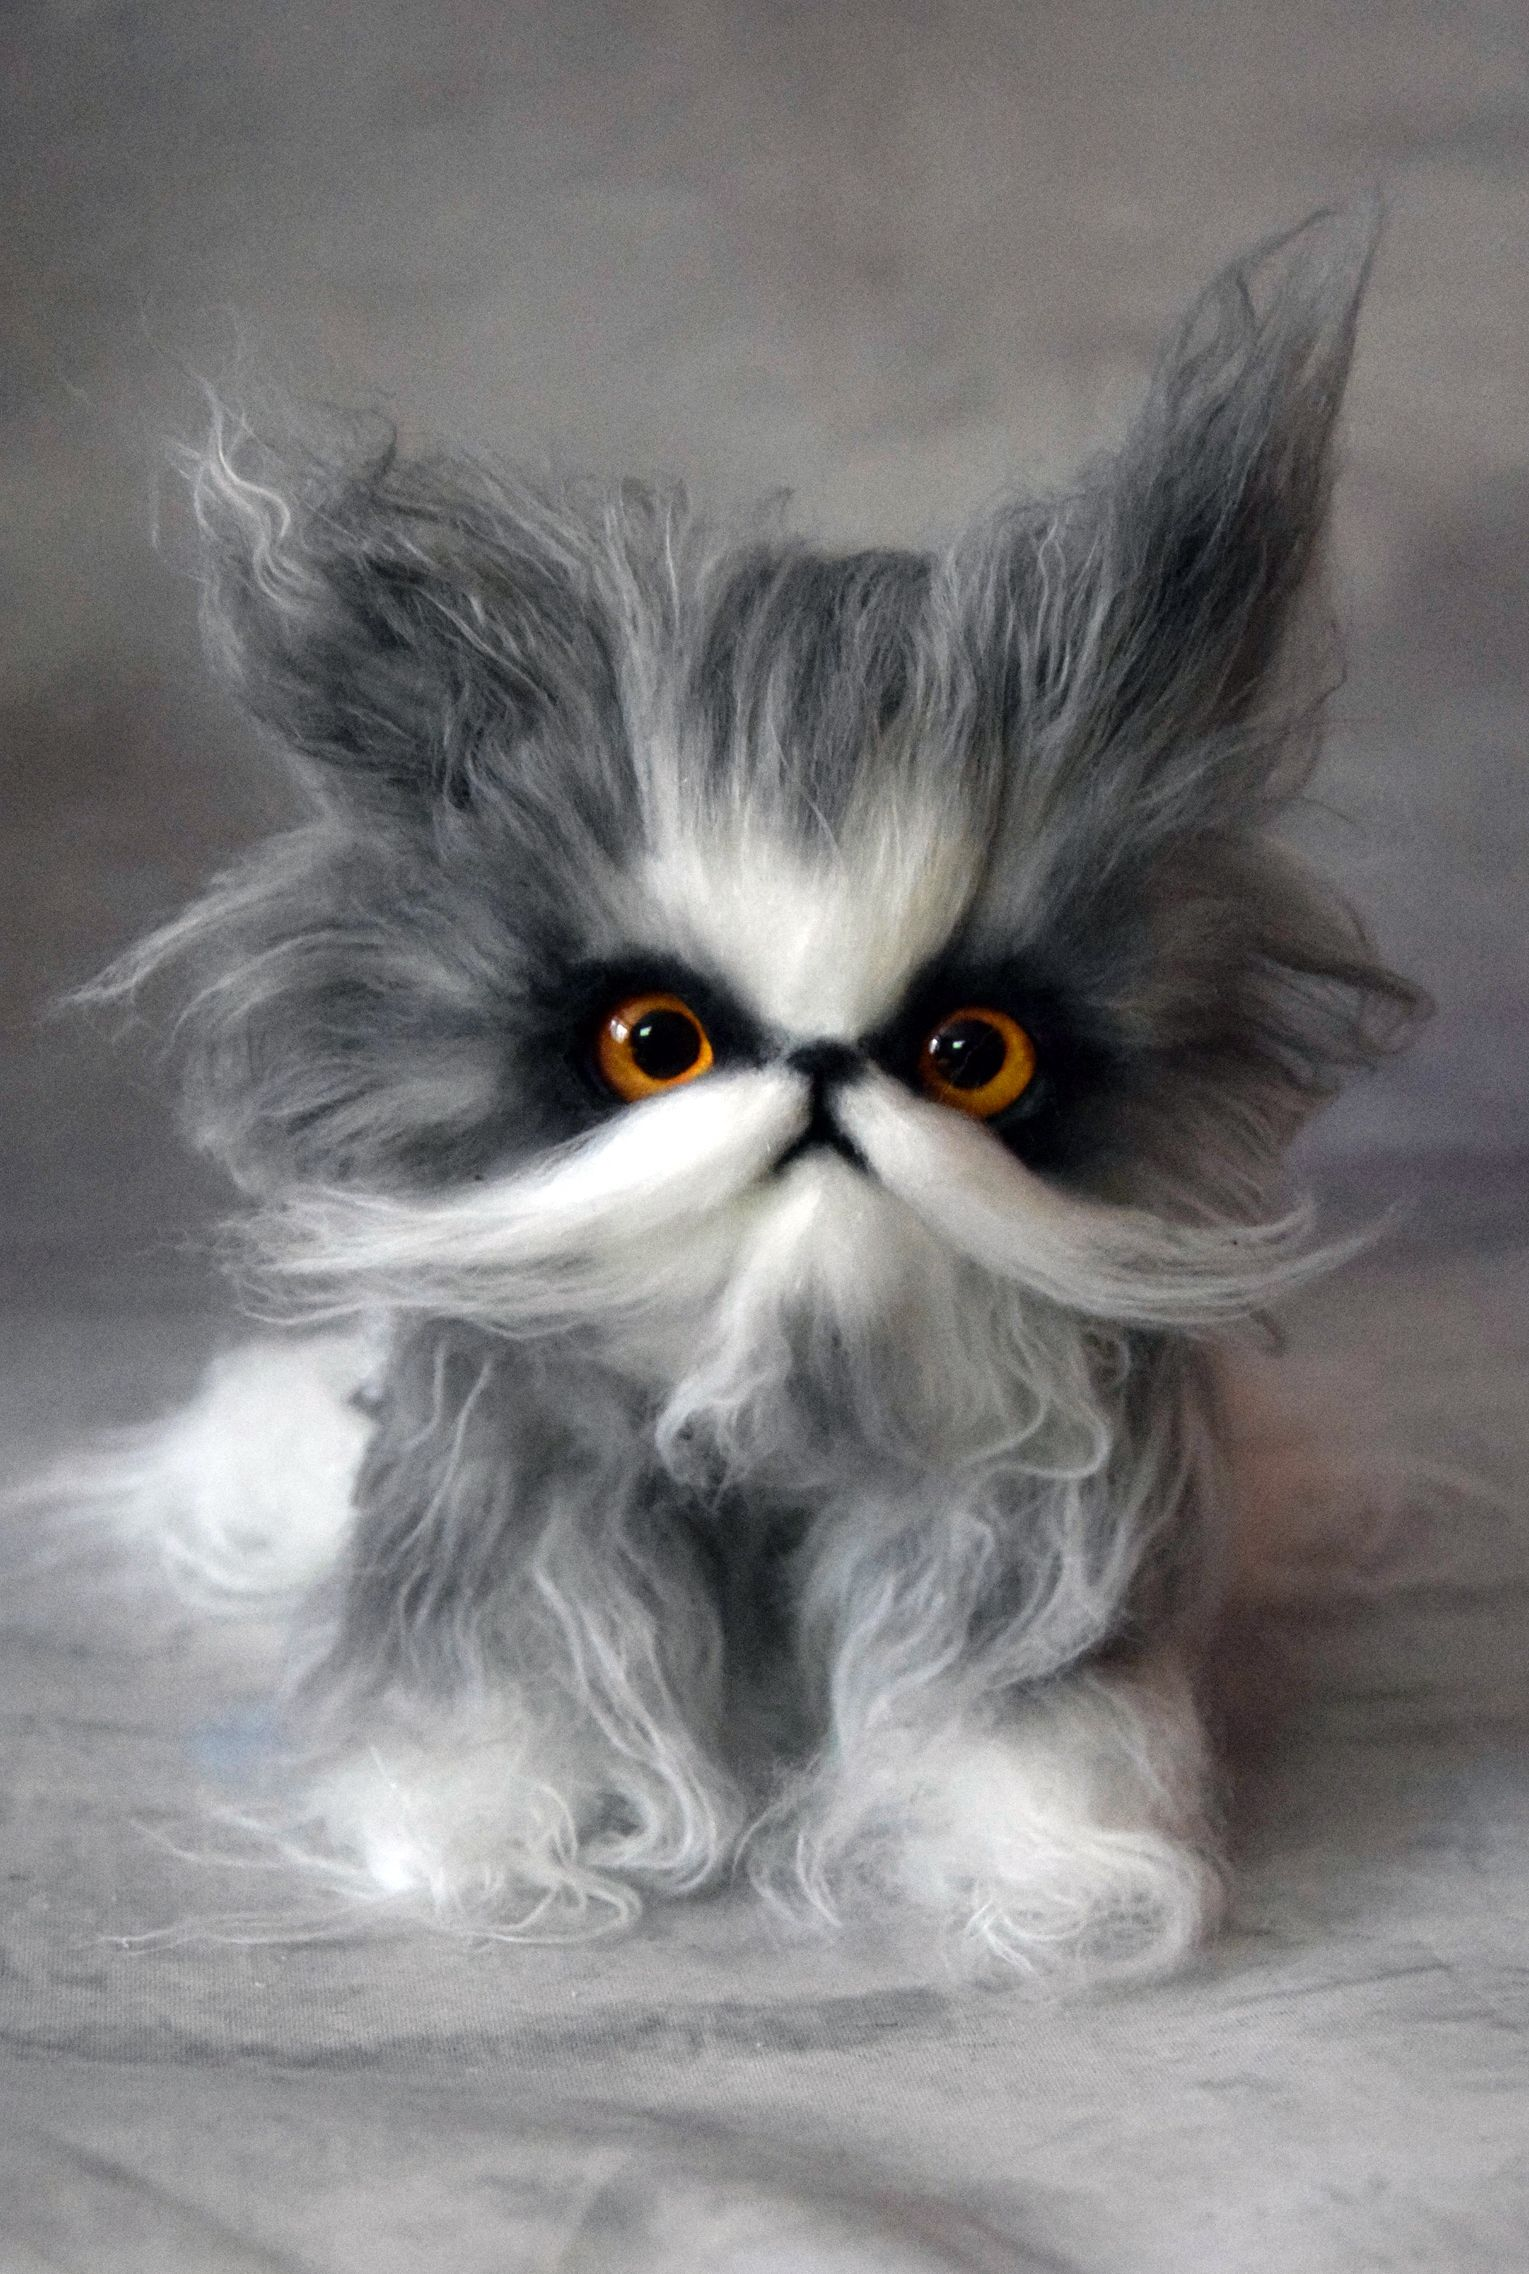 Persian Kitten And Fantasy Cats Toy By Monkeybusinesstoys Fantasy Creatures Pets Toys From Faux Fur And Polymer Clay Myst Persian Kittens Cat Toys Pet Toys